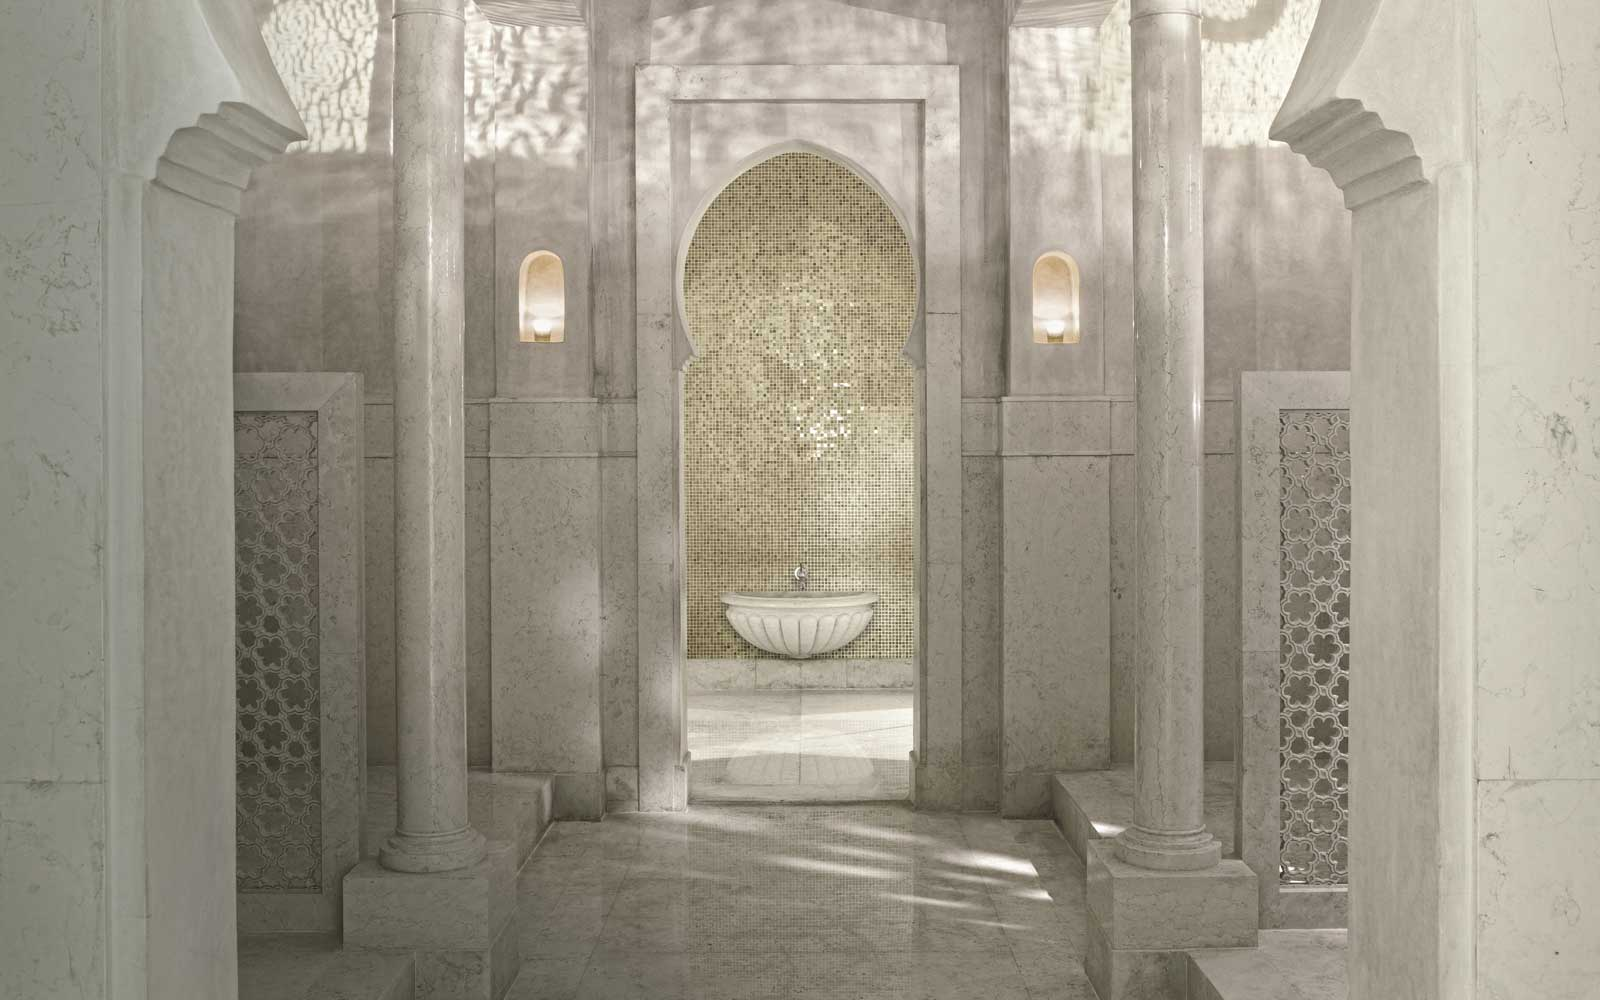 Hammam Spa at the Royal Mansour, in Marrakech, Morocco